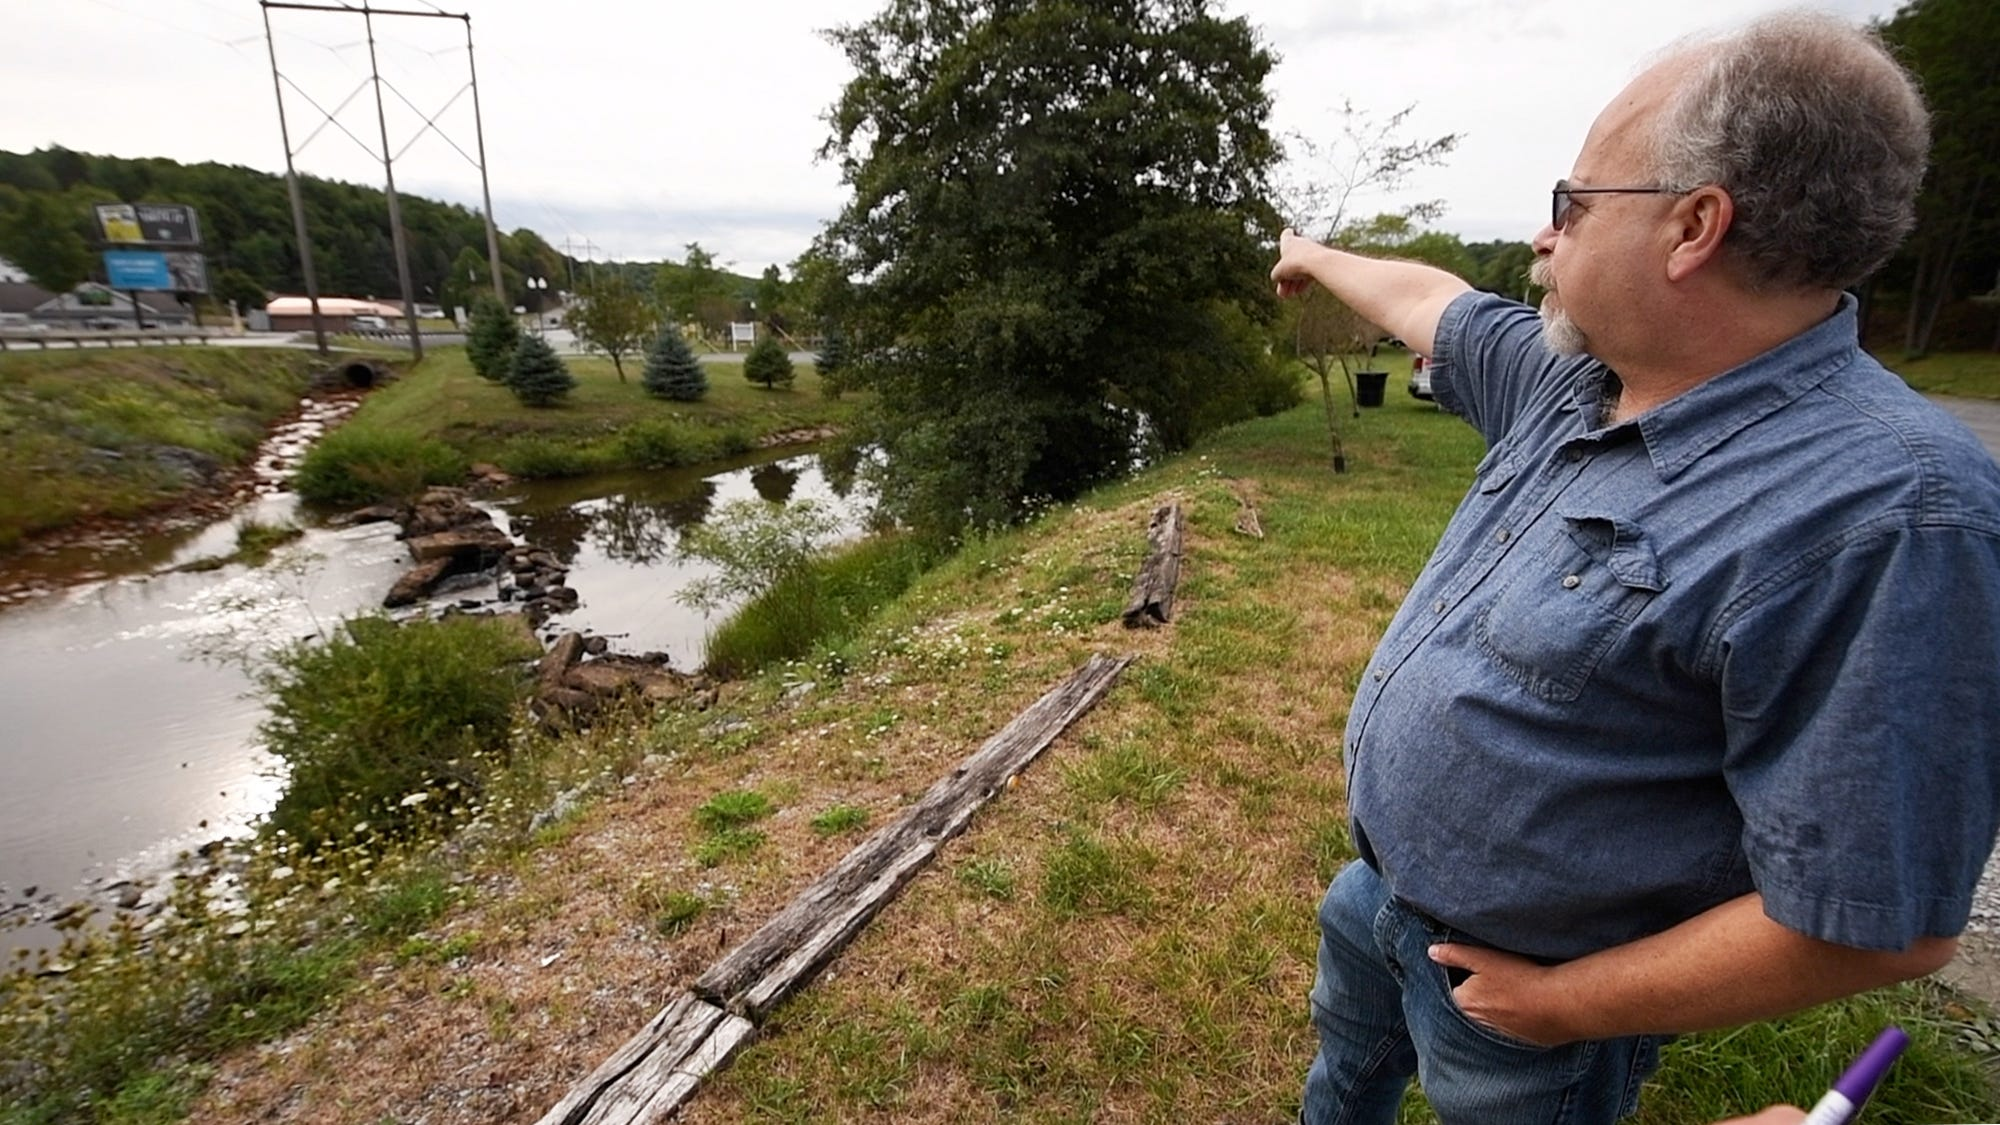 Eric Skrivseth points to a diversionary creek created to bring mine discharge two miles downstream from a recreation area in Philipsburg, Pa. Sept. 30, 2020.